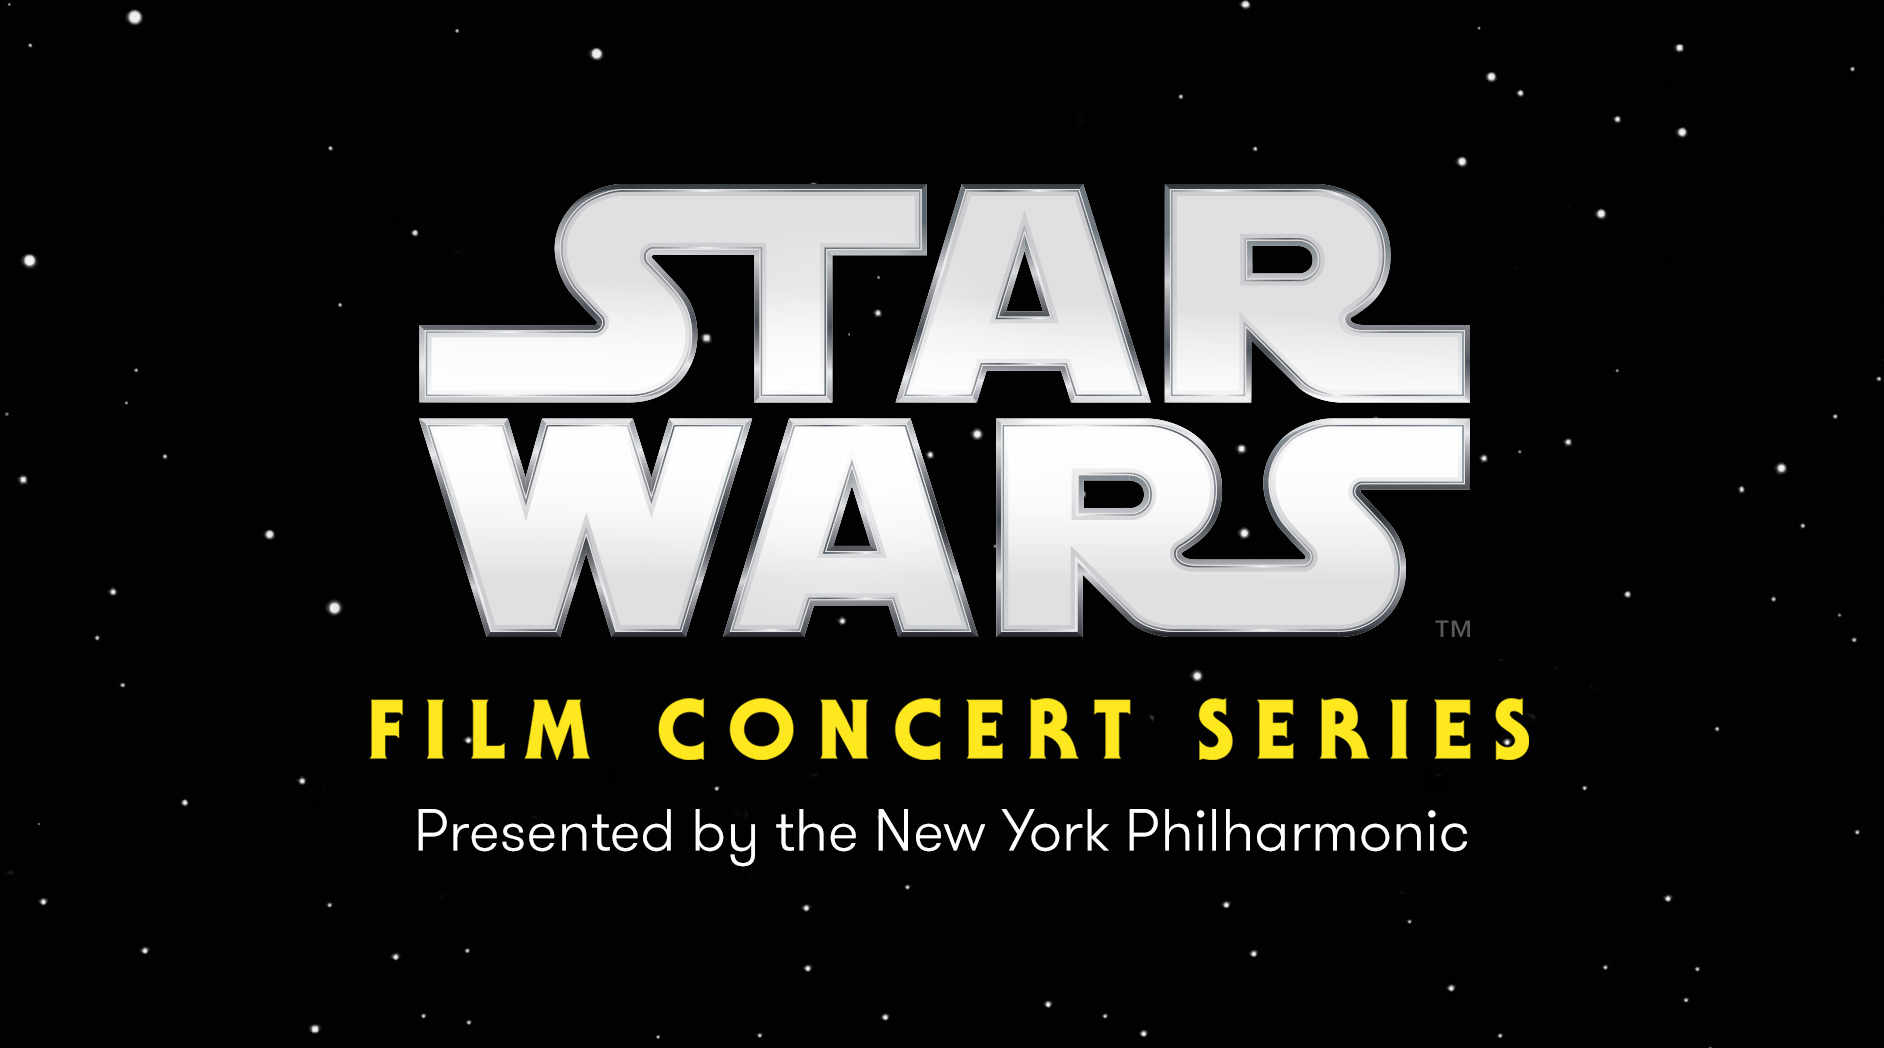 Star Wars Film Concert Series Presented by the New York Philharmonic